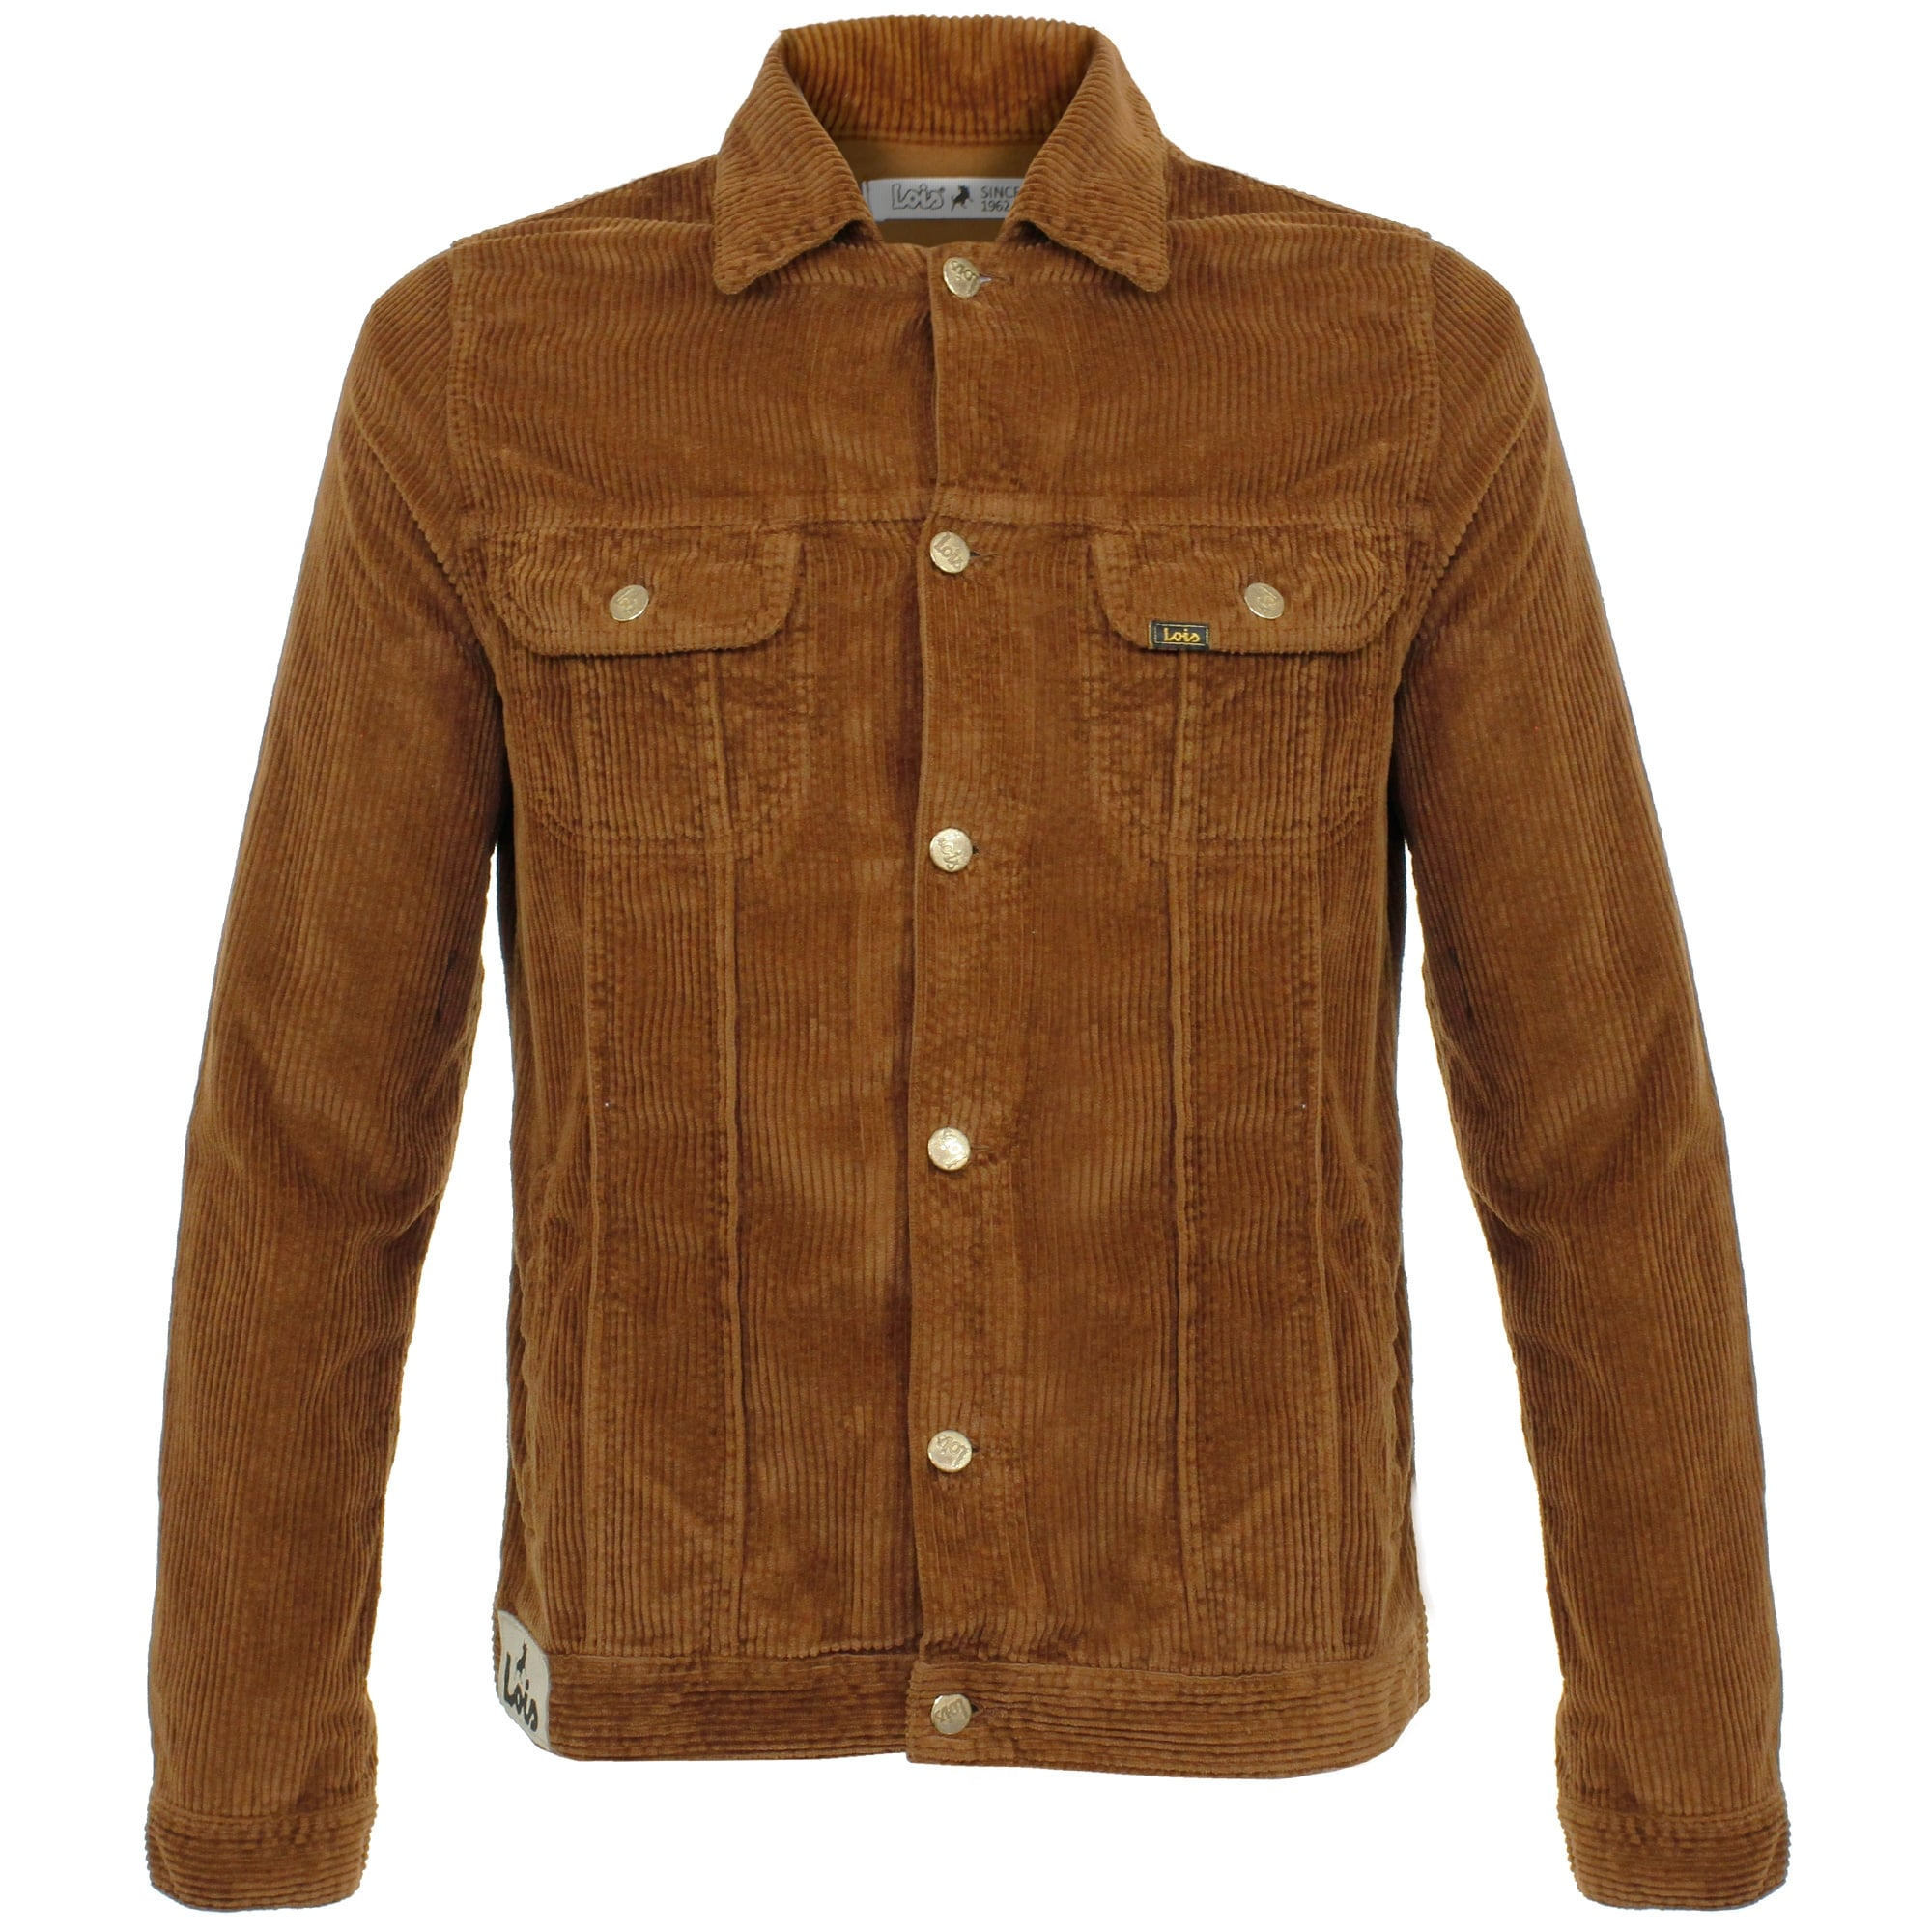 lois-jeans-jumbo-cord-brown-corduroy-jacket-1001394br-p25382-98572_image